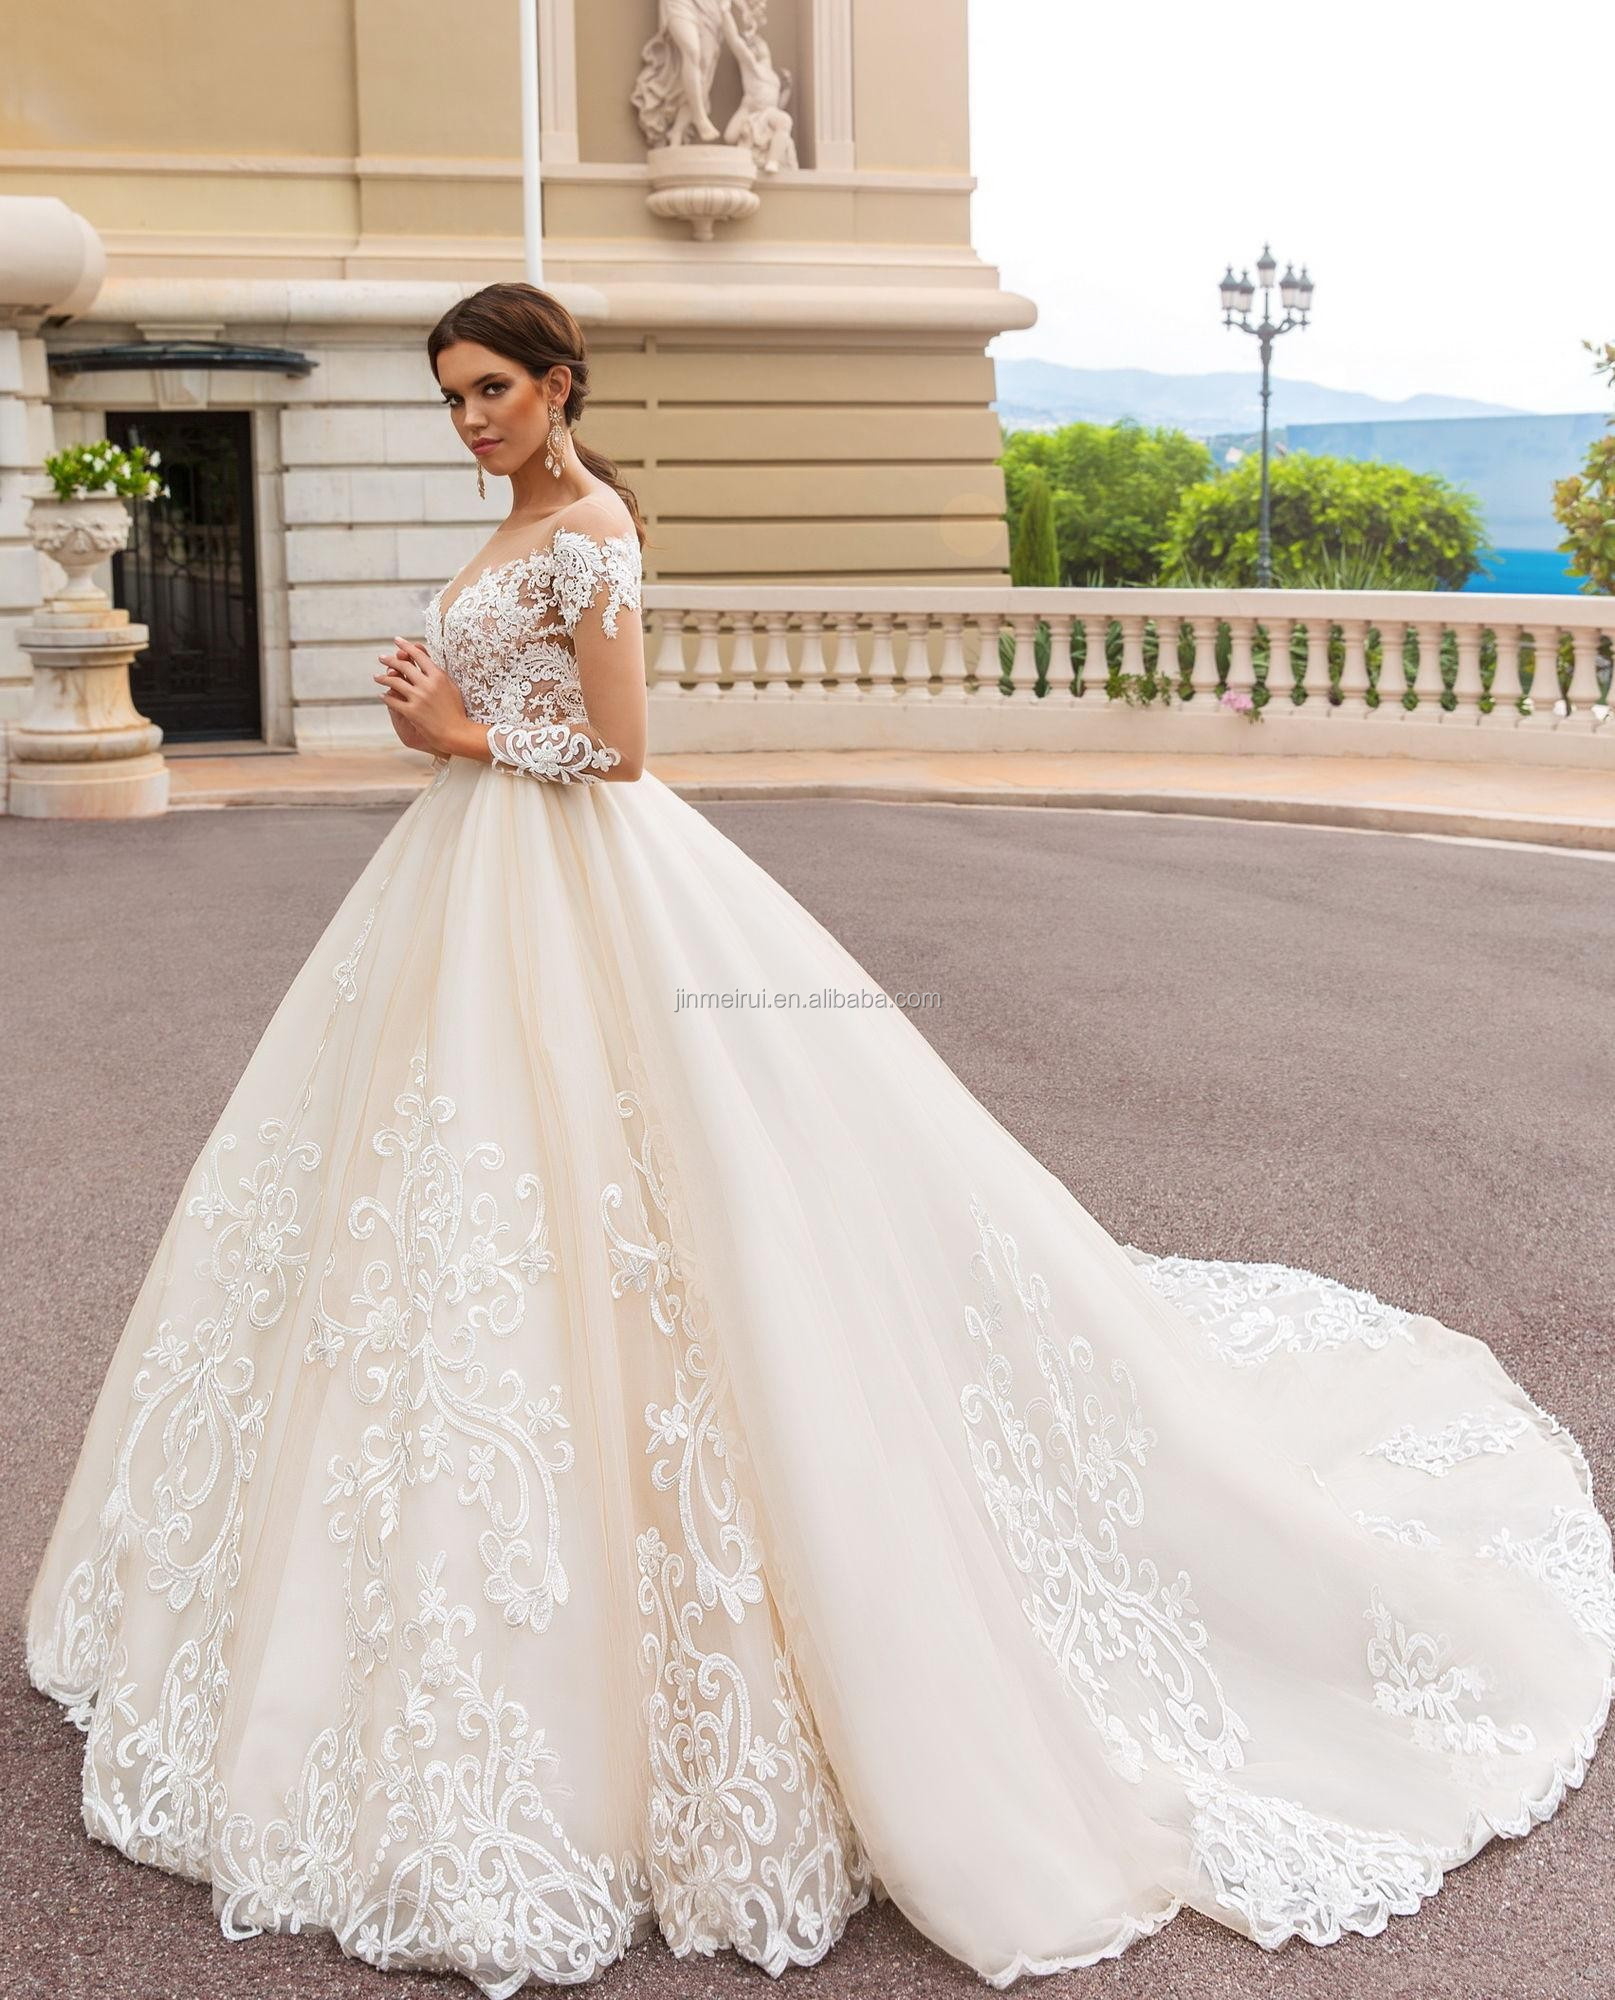 Long Sleeves Ball Gowns Wedding Dresses